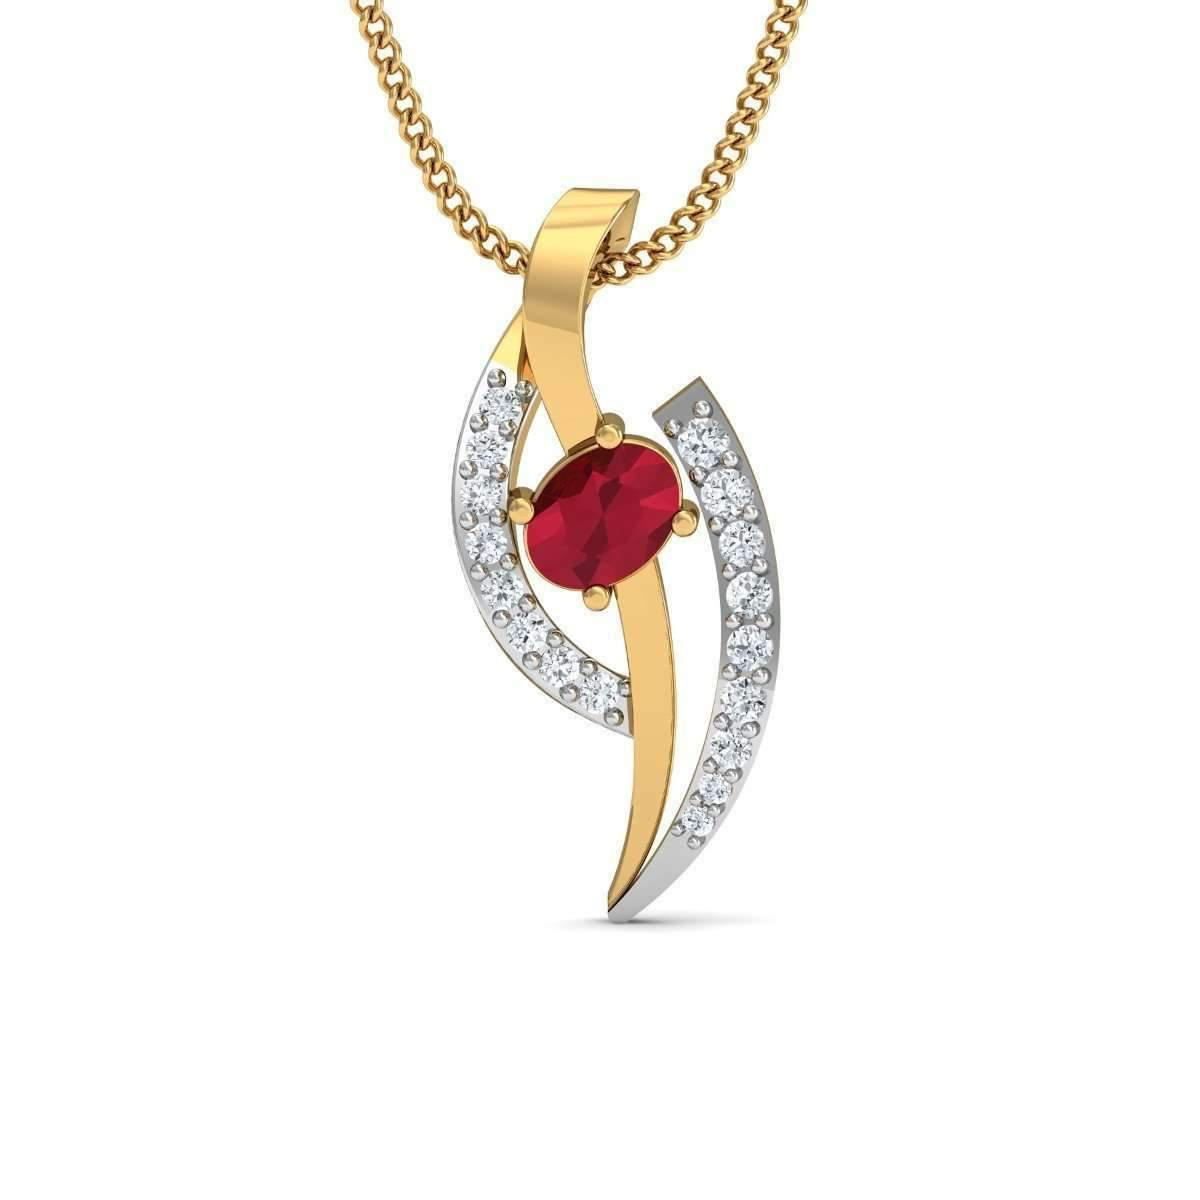 Diamoire Jewels Pave Set Diamond and Pear Cut Ruby Pendant in 10kt Yellow Gold 7giBqoc7jz